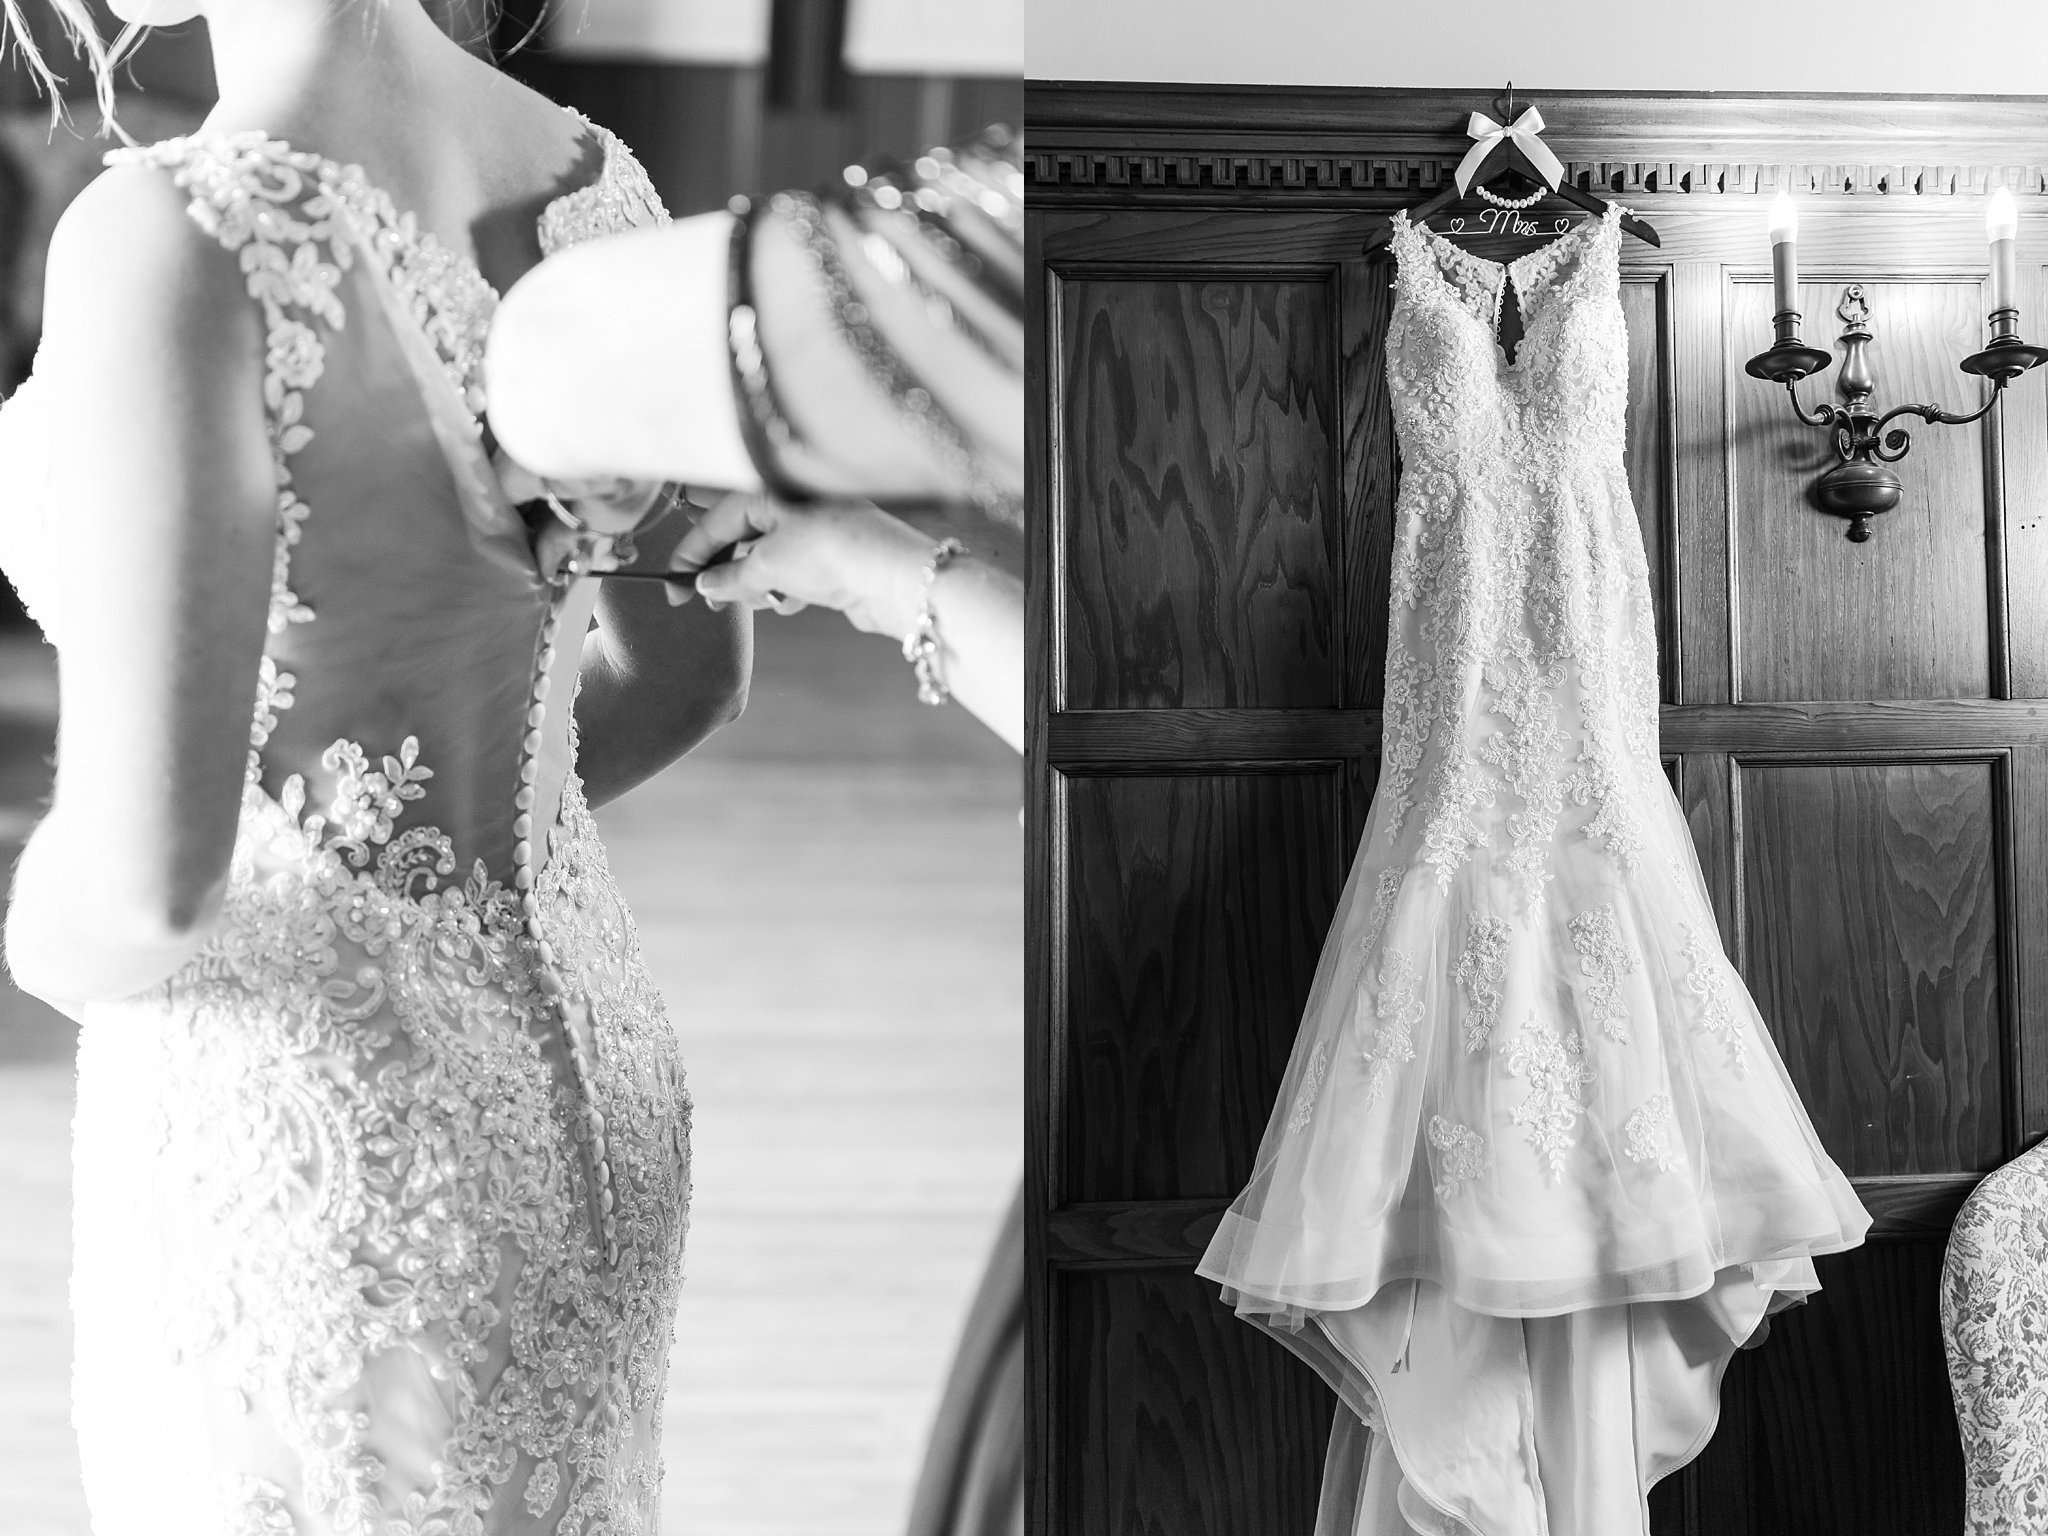 candid-romantic-wedding-photos-at-the-masonic-temple-belle-isle-detroit-institute-of-arts-in-detroit-michigan-by-courtney-carolyn-photography_0009.jpg